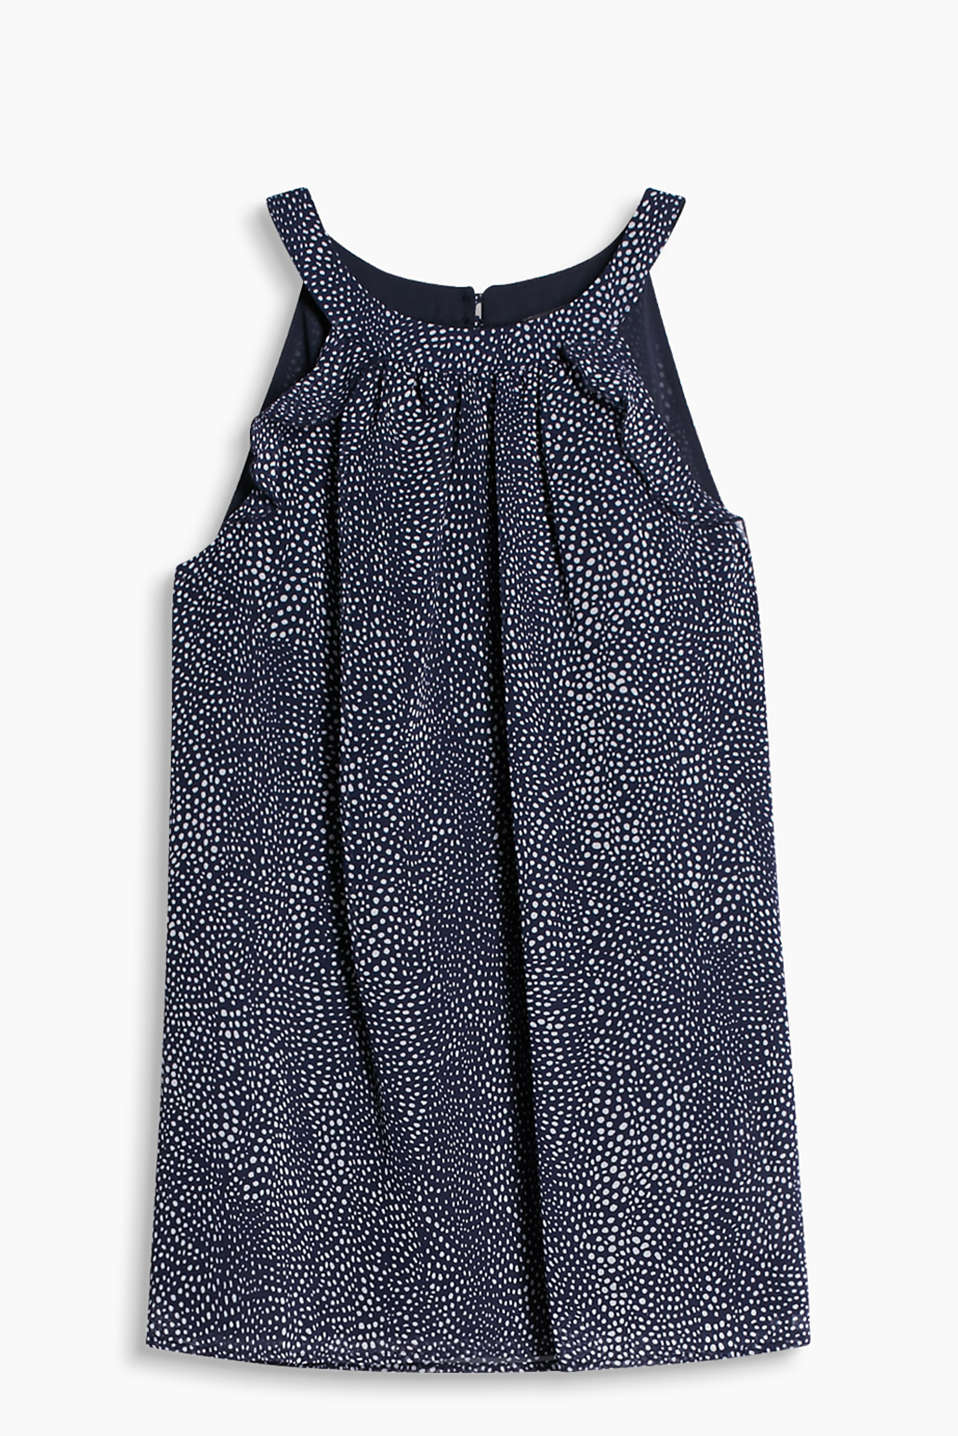 Delicate chiffon top with cut-away shoulders and a modern polka dot pattern